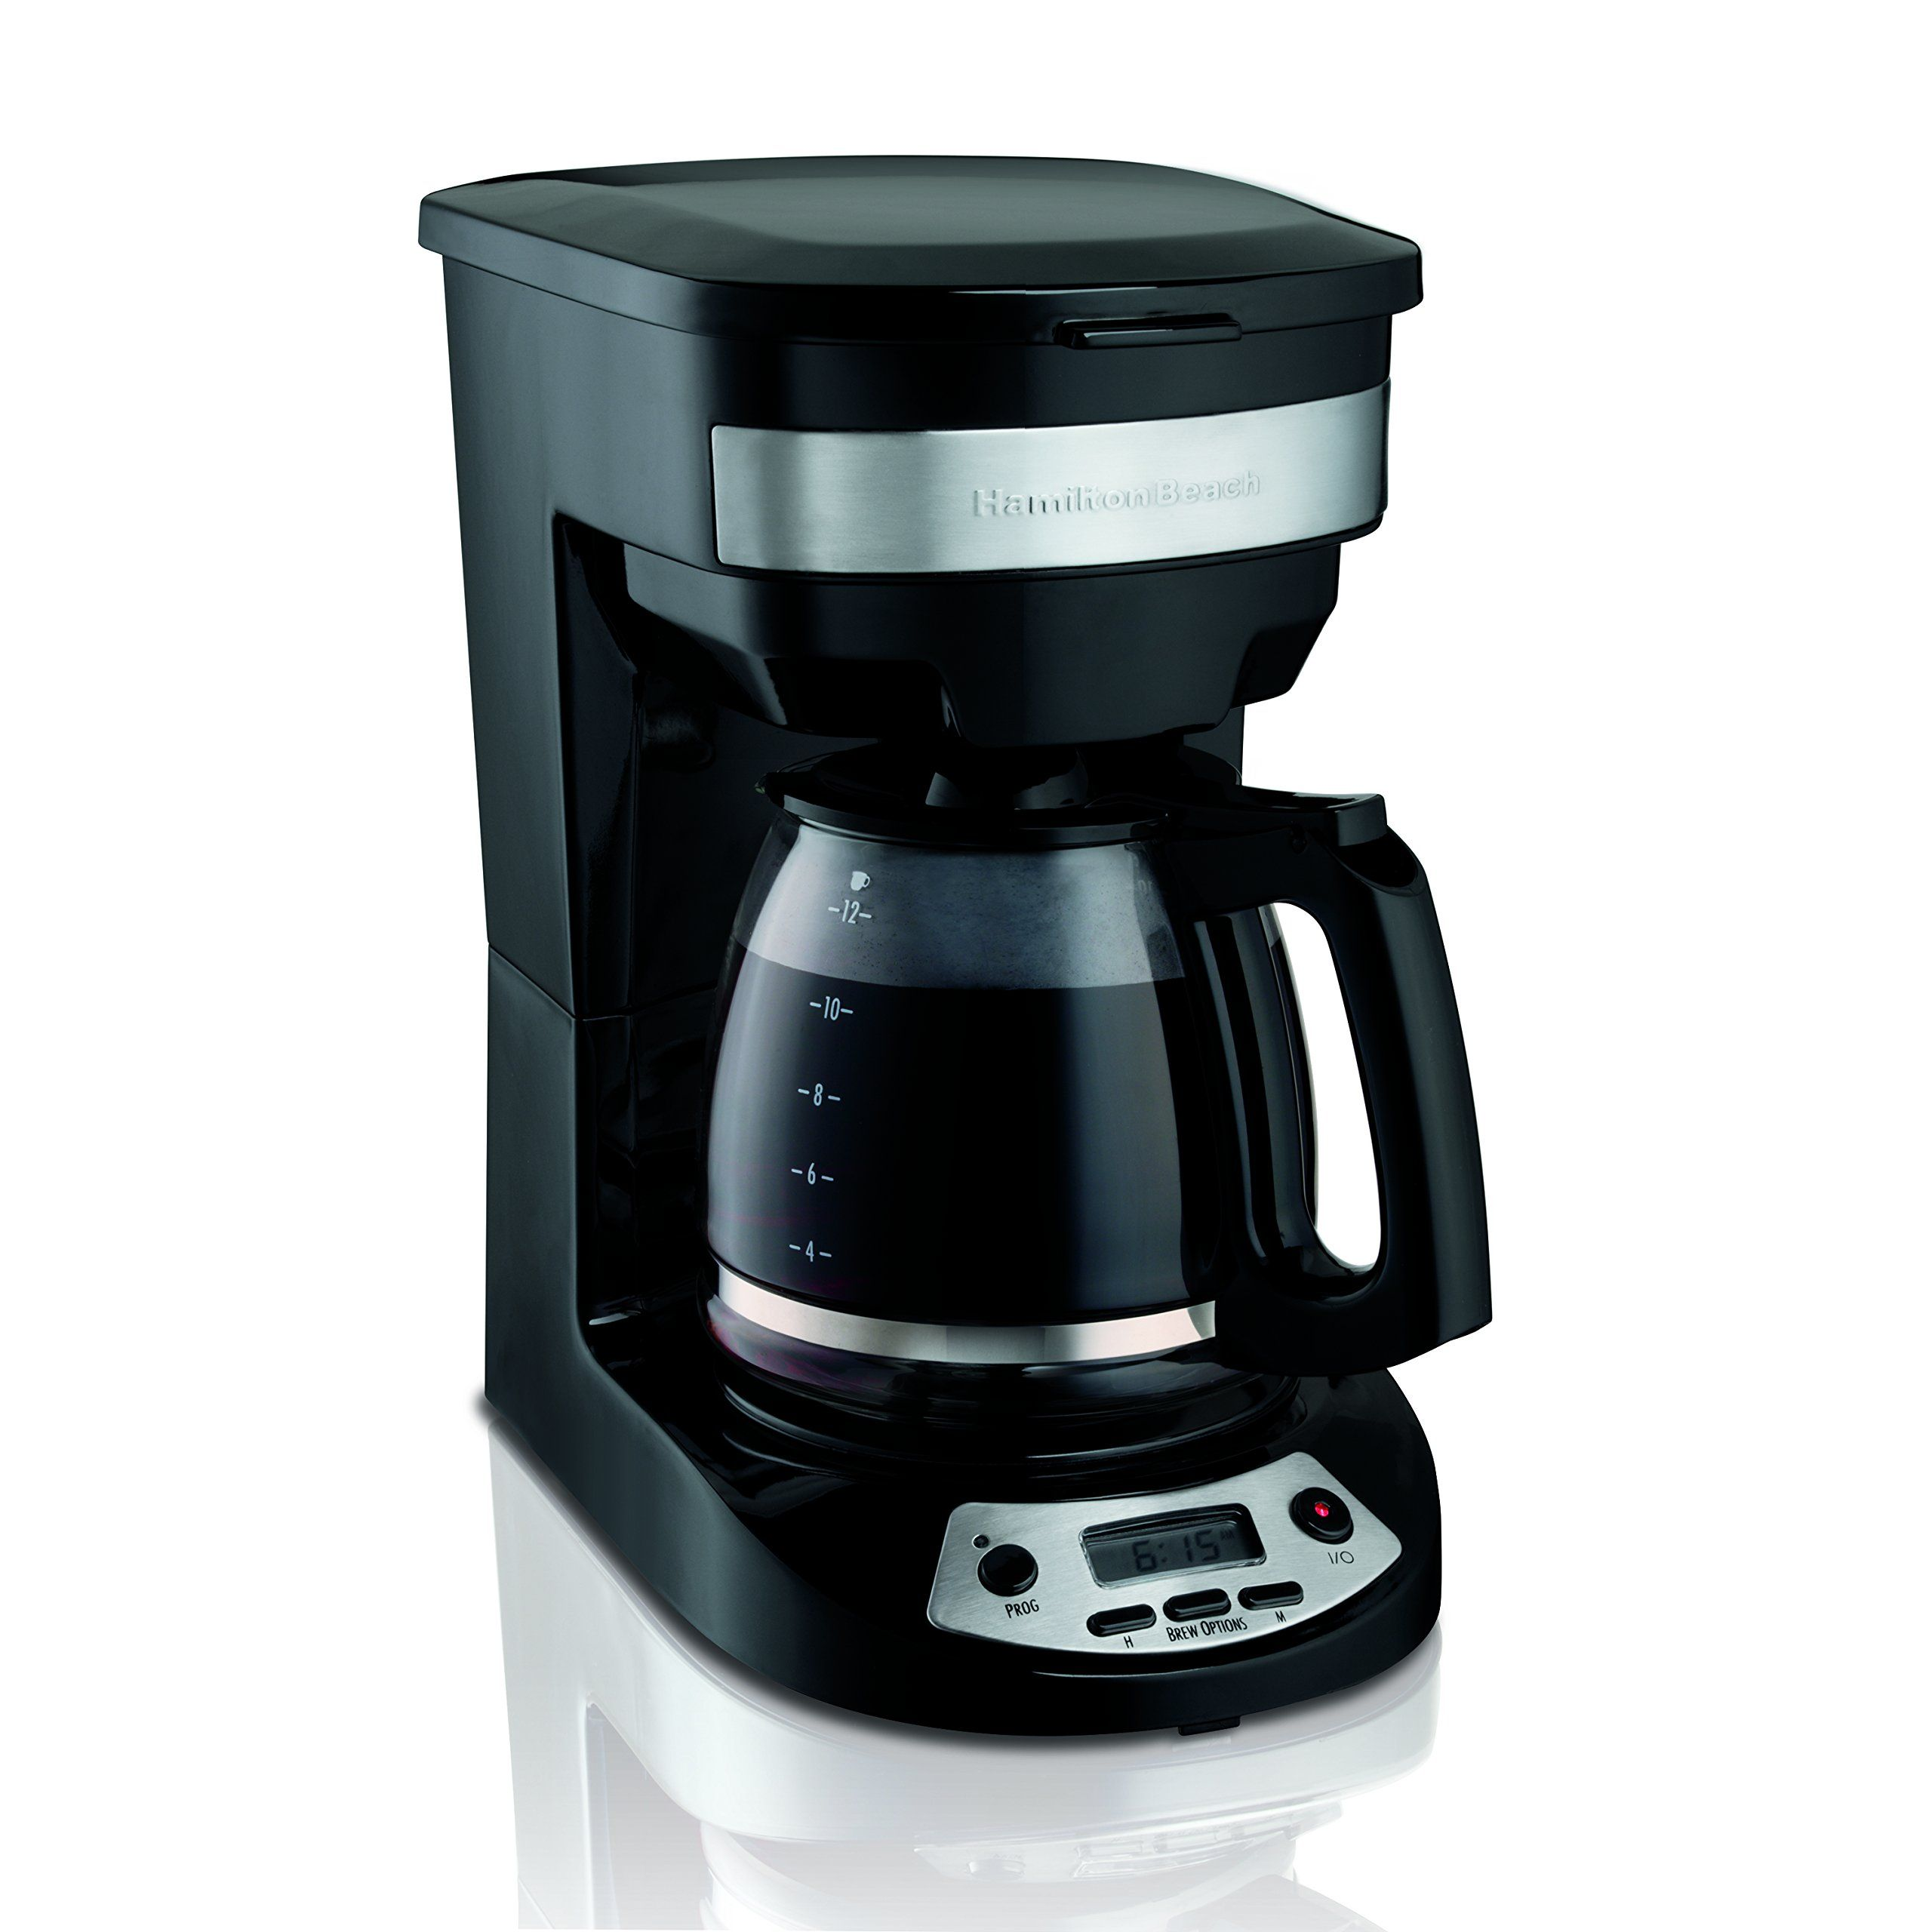 Hamilton beach programmable coffee maker black read more